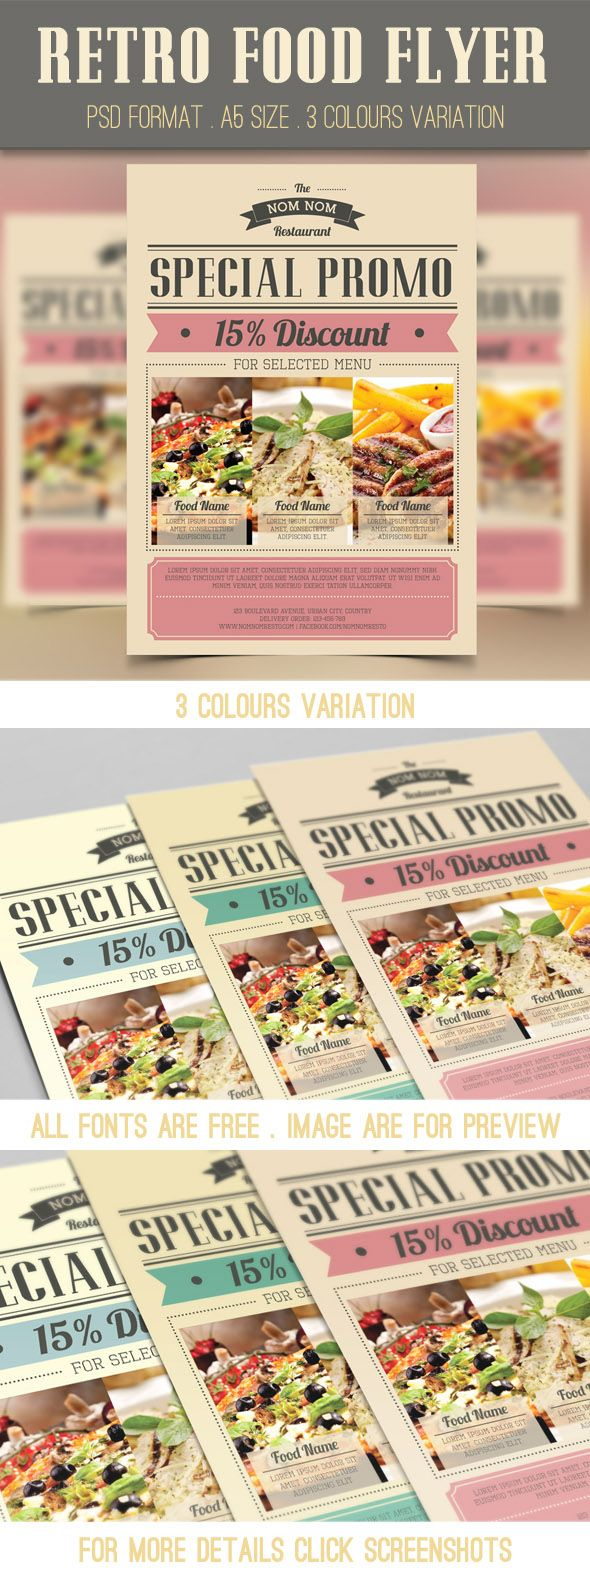 It's a food flyer with retro design for your restaurant/cafe promotion purposes. For more details click on the link provided. :)